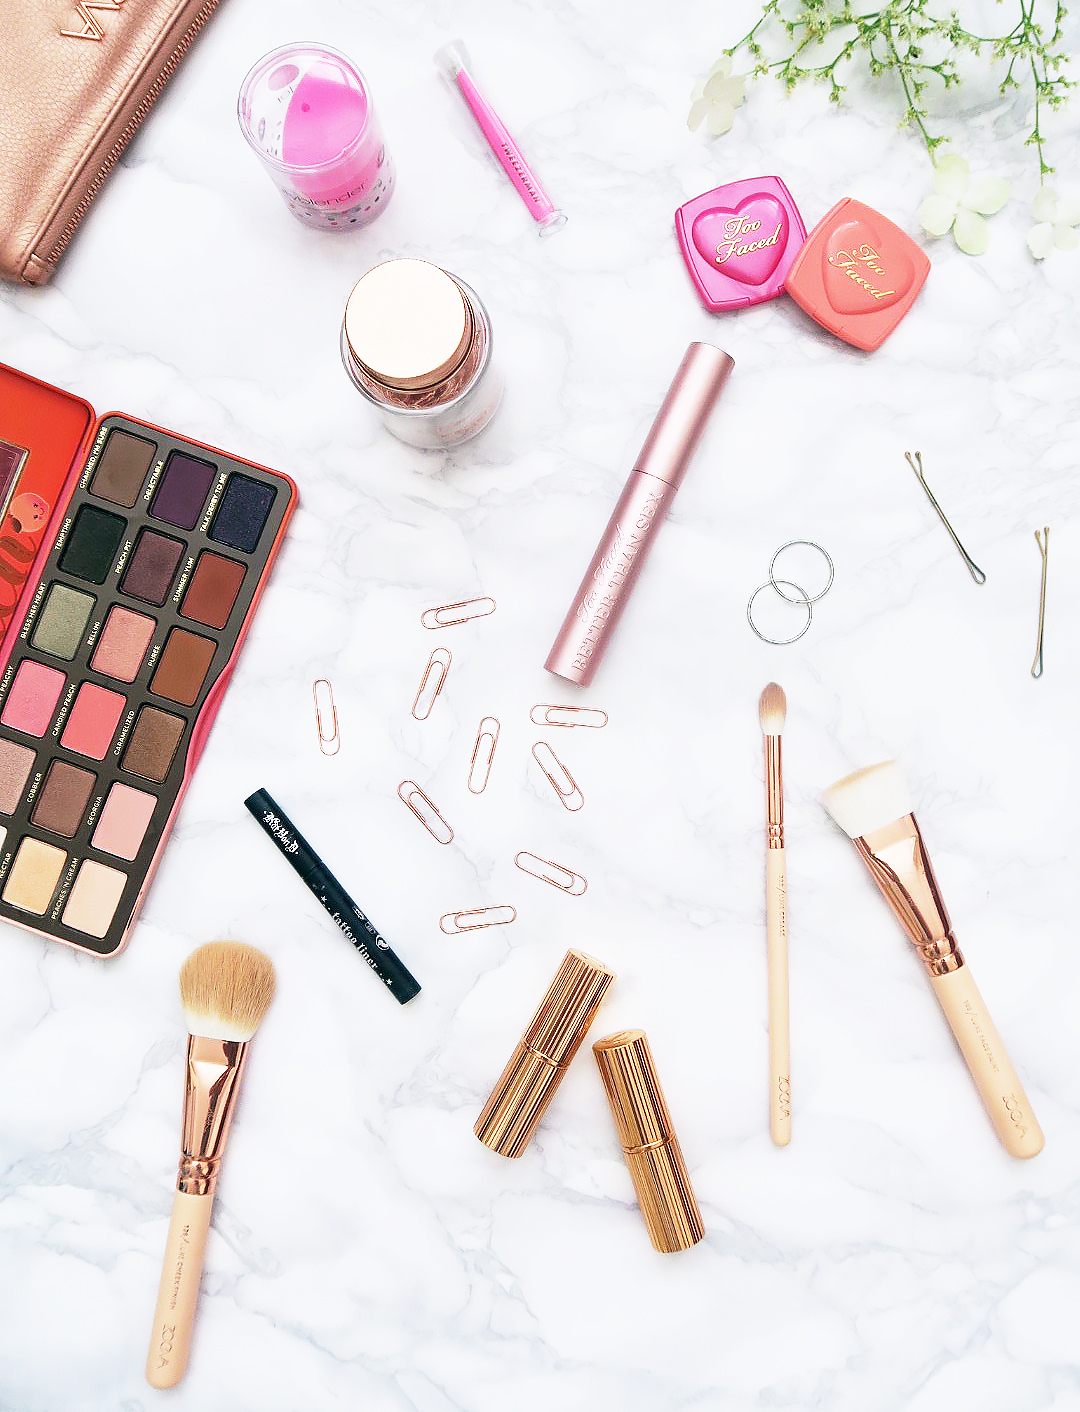 SEVEN BEAUTY PRODUCTS TOTALLY WORTH THE HYPE